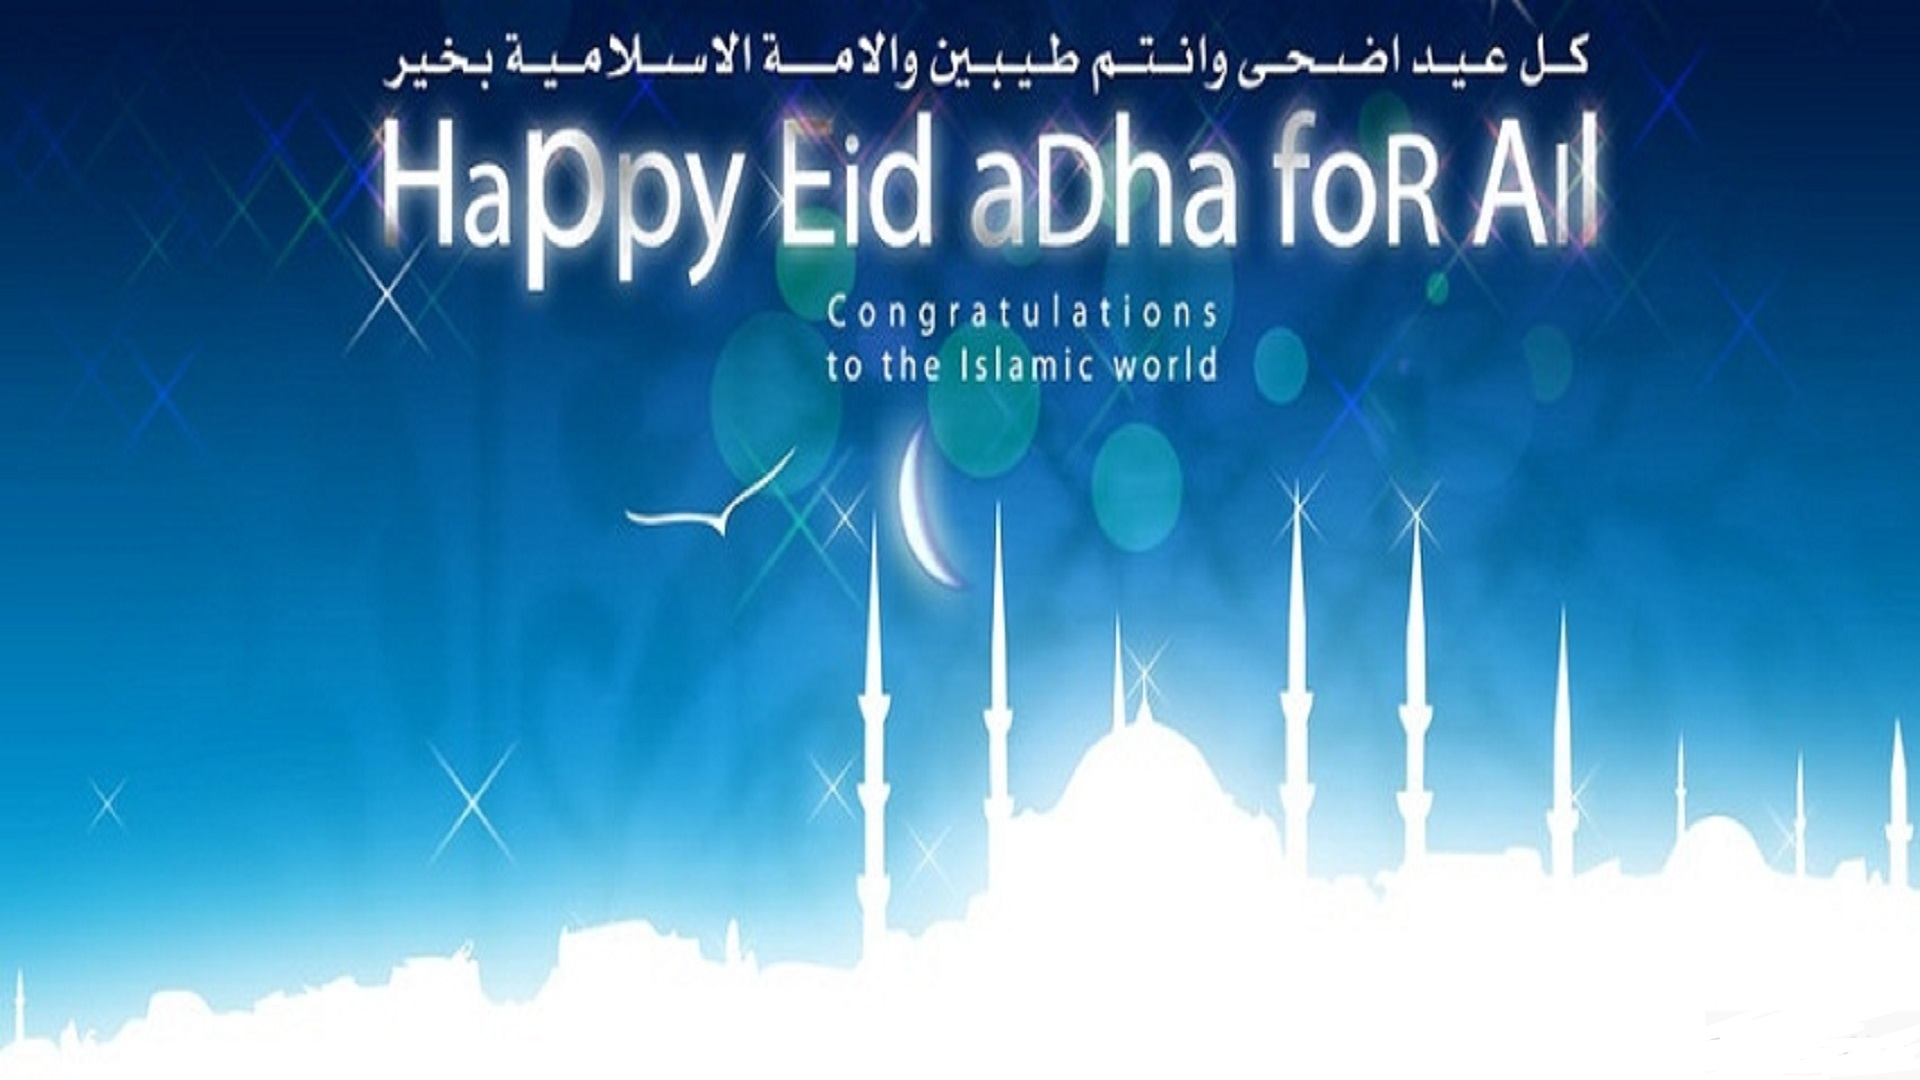 Eid Mubarak To All Free Mobile Hd Desktop Pictures